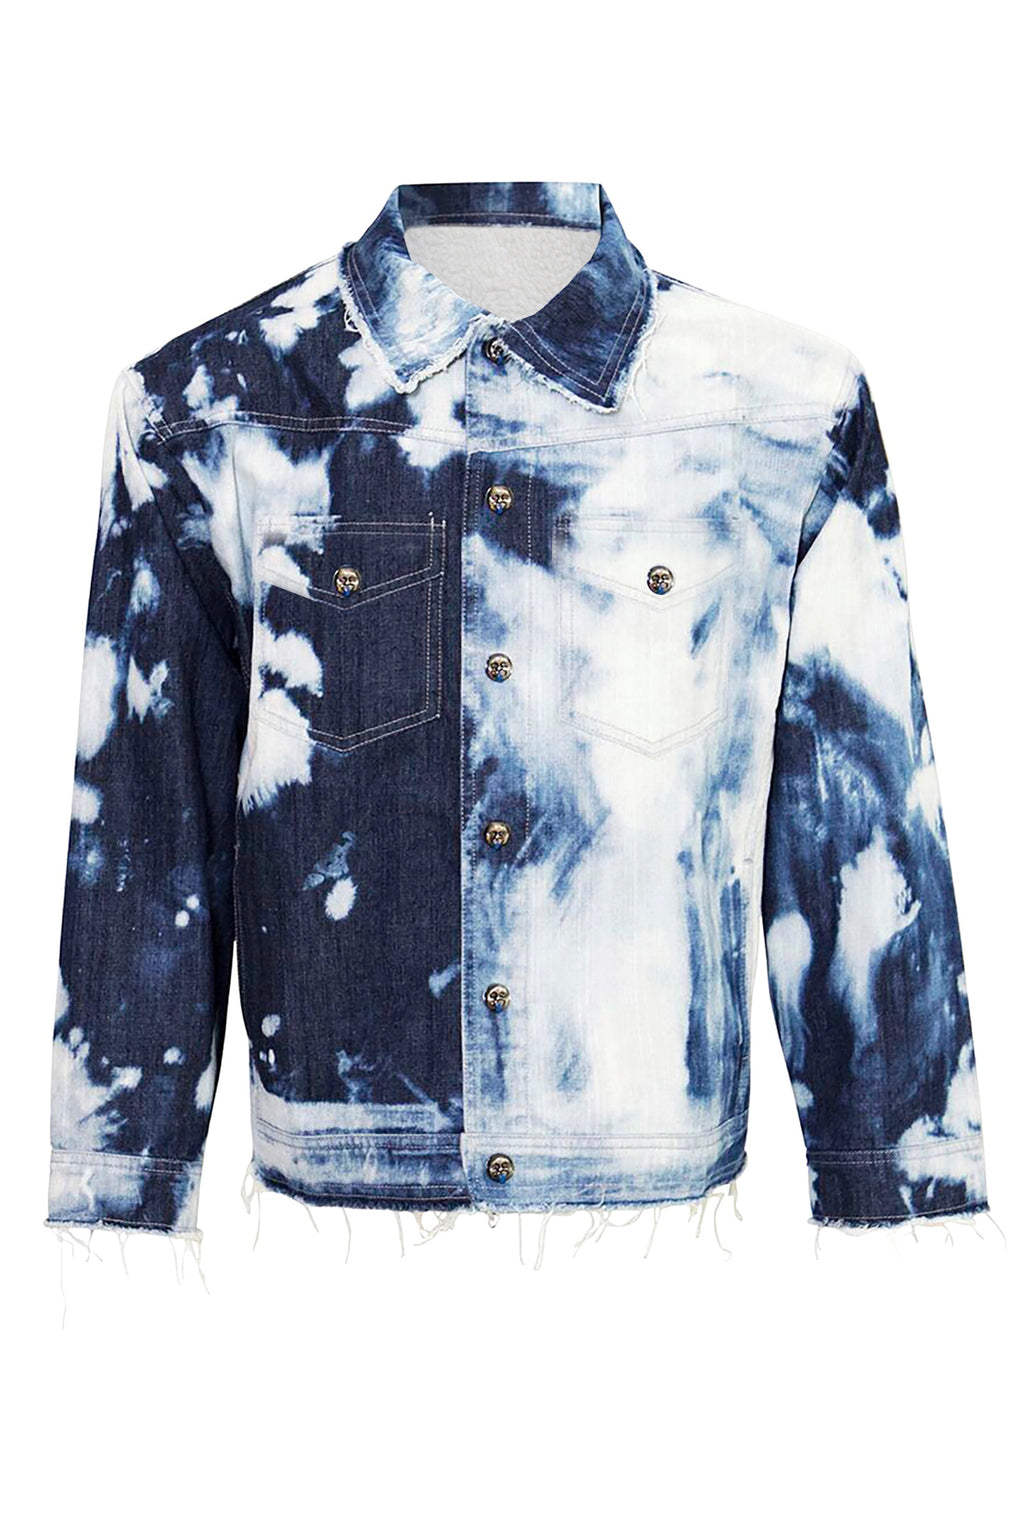 Unisex Tie Dye Denim Jacket with Faux Fur